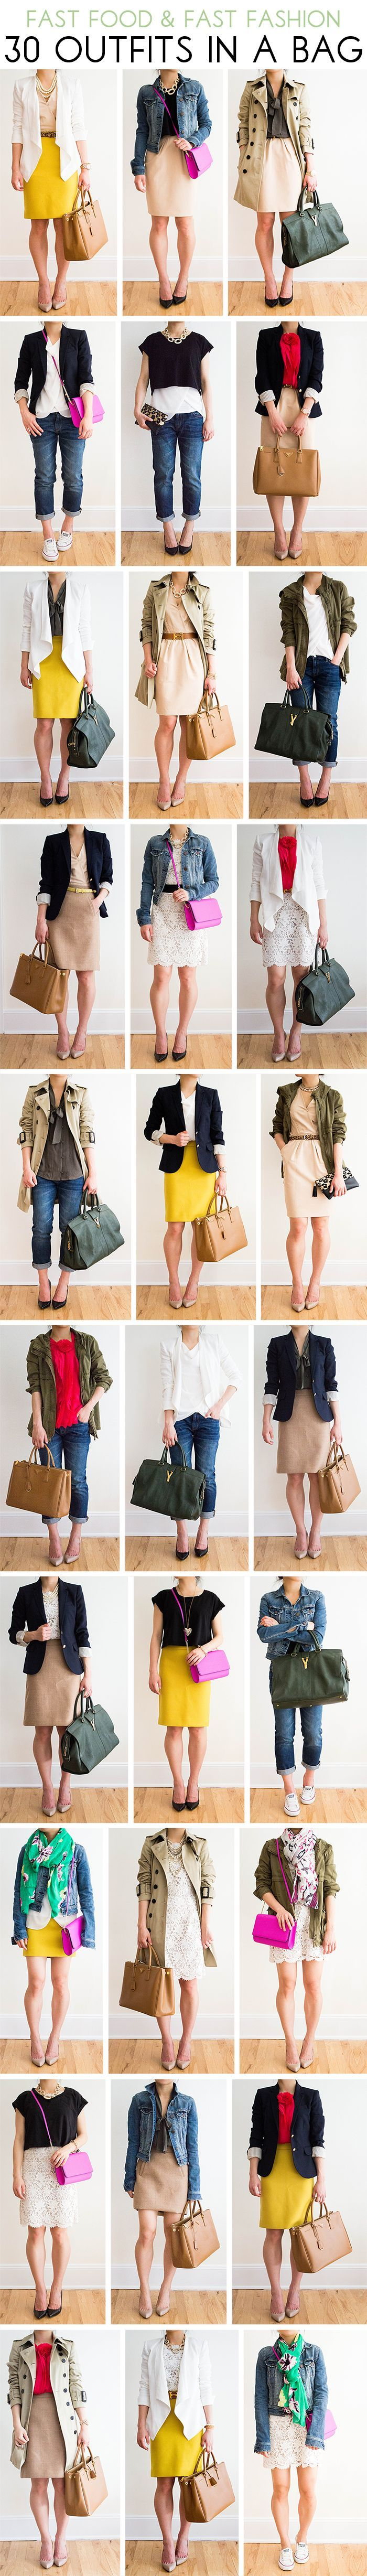 30 Outfits in a Bag: Boyfriend Jeans & Wrap-Up